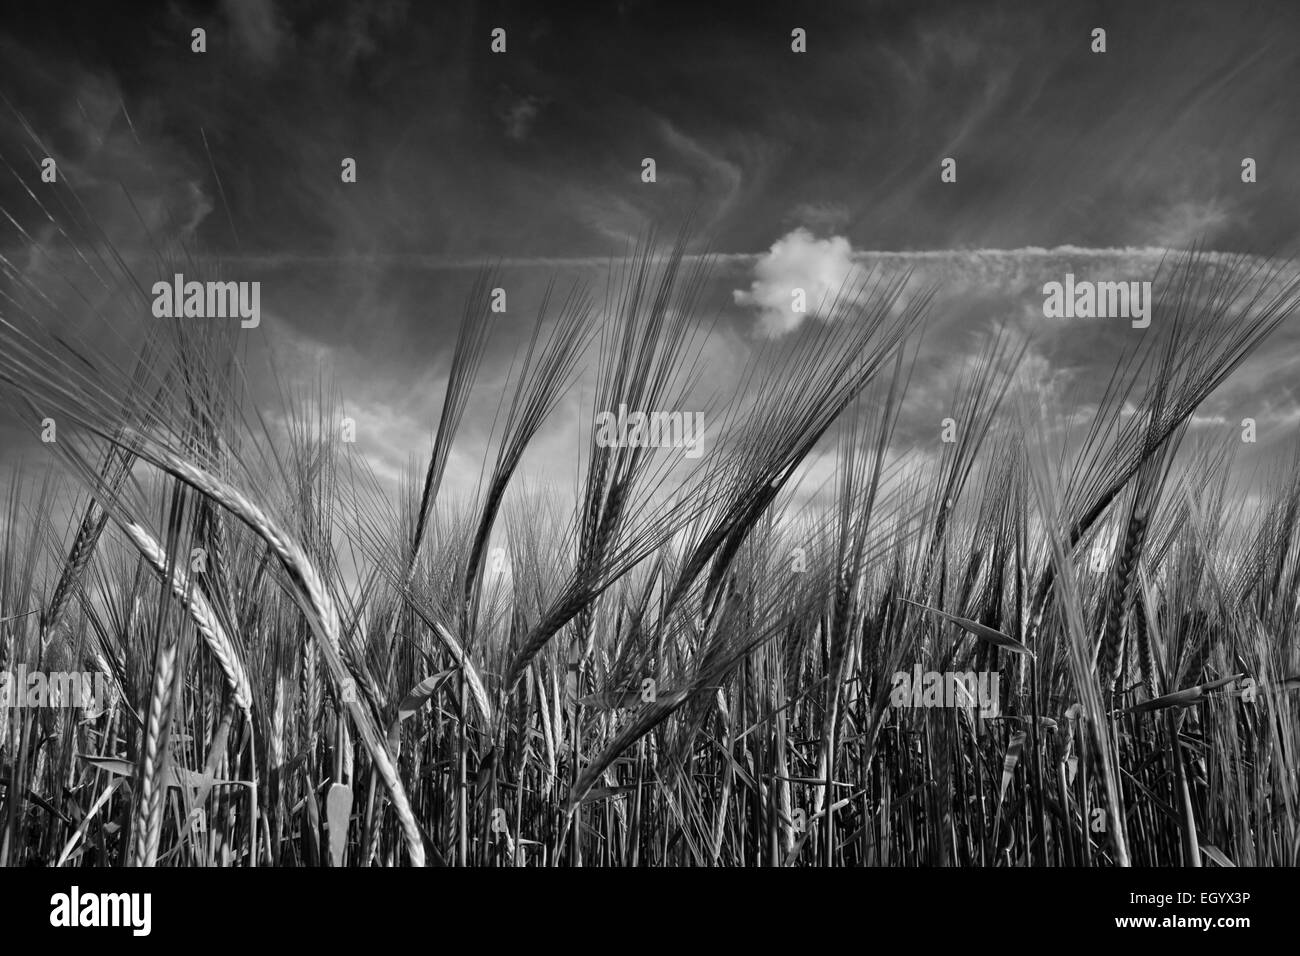 Close up of ears of barley growing in a Norfolk field. - Stock Image